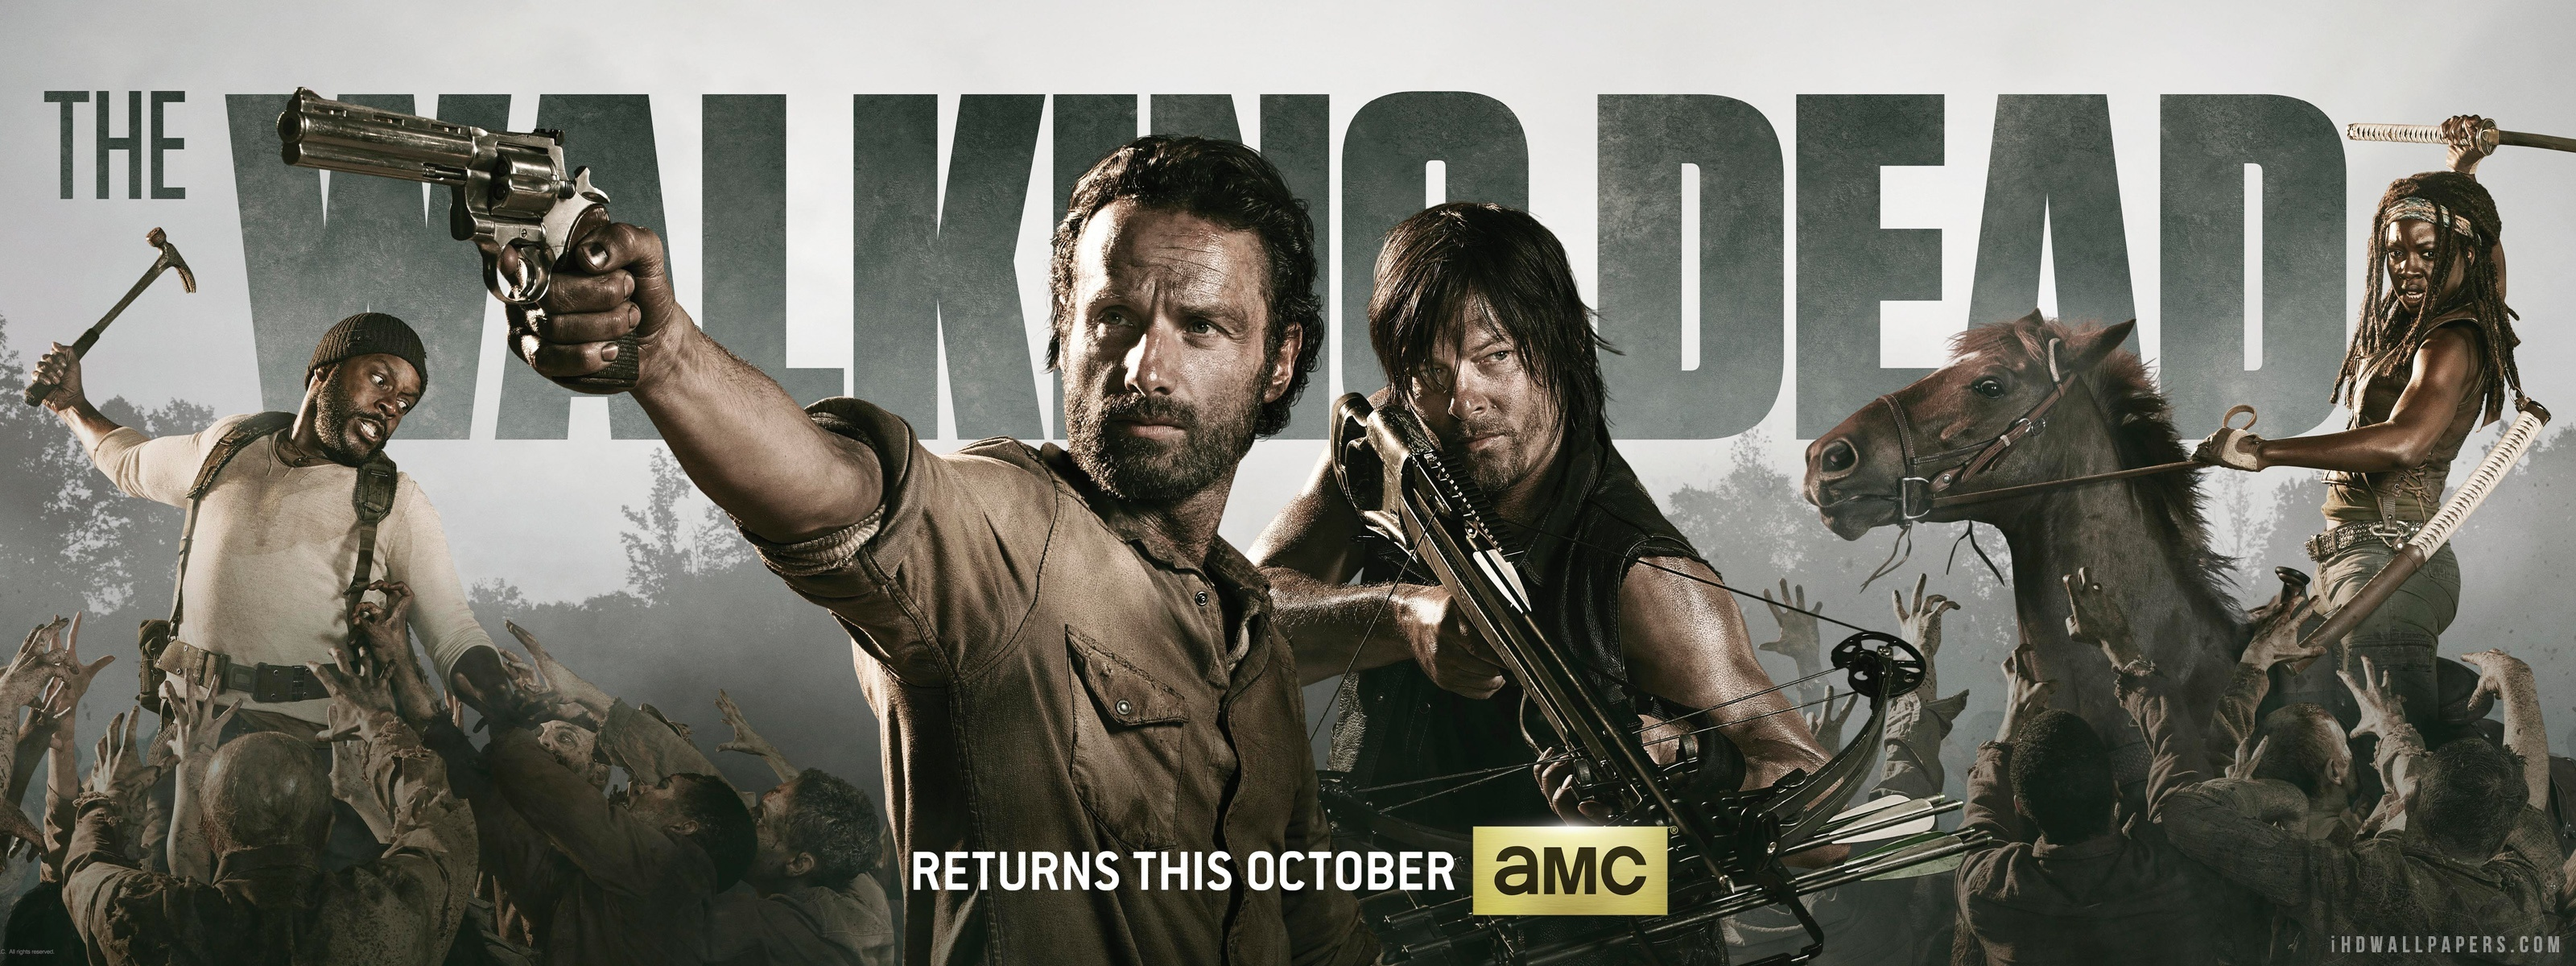 Movies the walking dead season 4 wallpapers desktop phone tablet movies the walking dead season 4 wallpapers desktop phone tablet awesome desktop awesome wallpapers voltagebd Choice Image